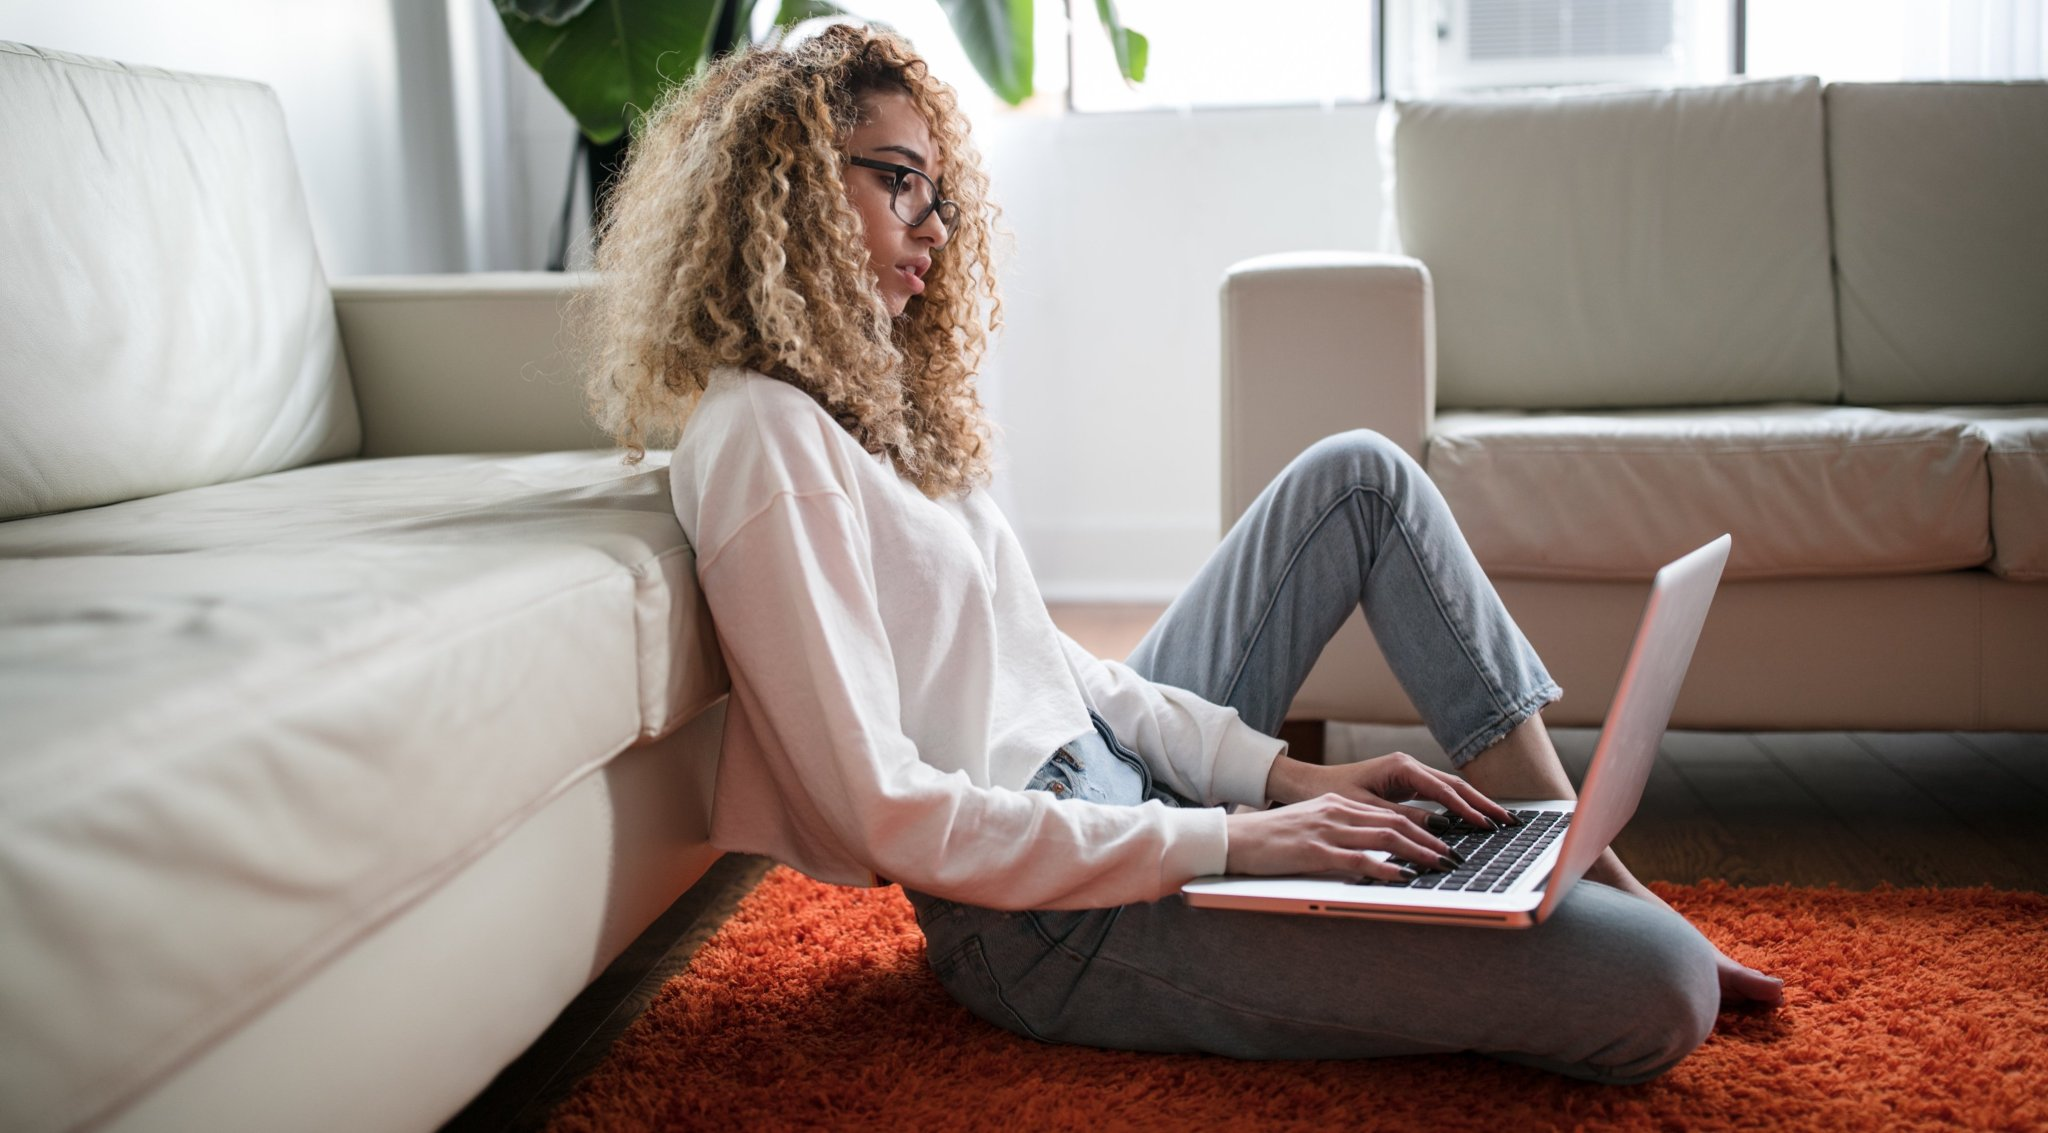 The 50 Best Remote, Work-At-Home Jobs You Can Get Right Now—So You Can Make Money While in Quarantine